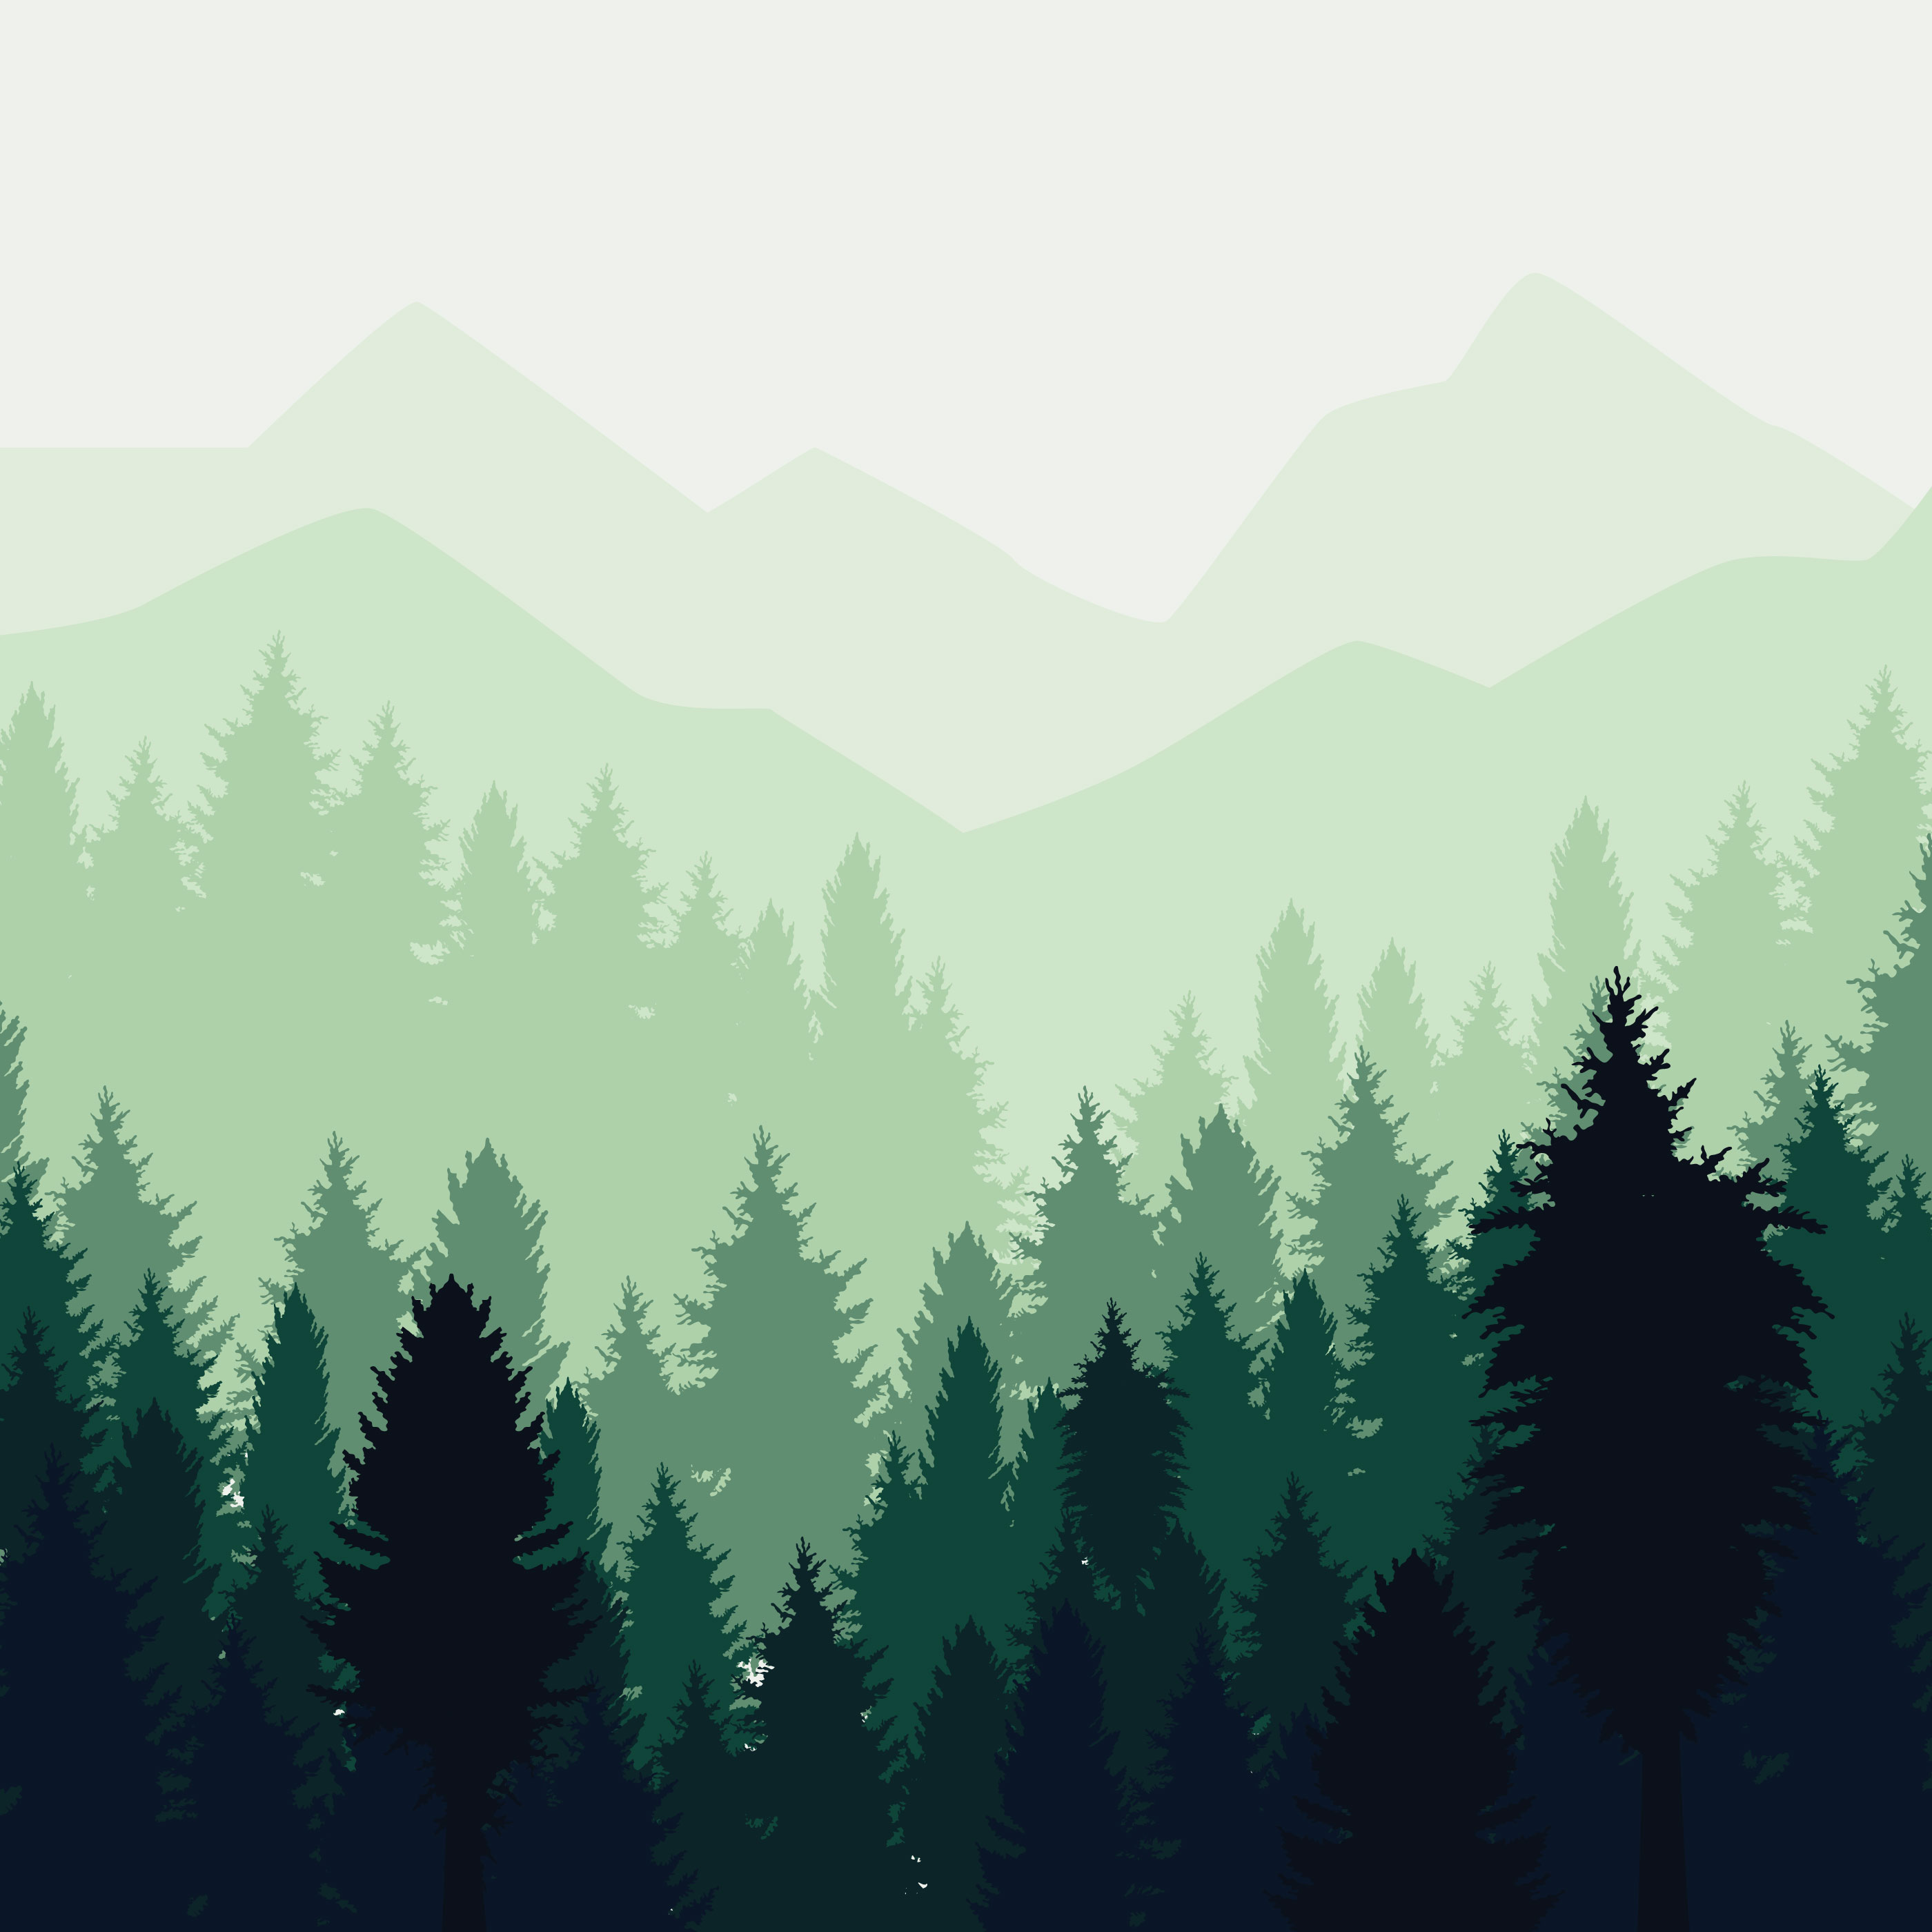 Forest Silhouette Free Vector Art 10 685 Free Downloads